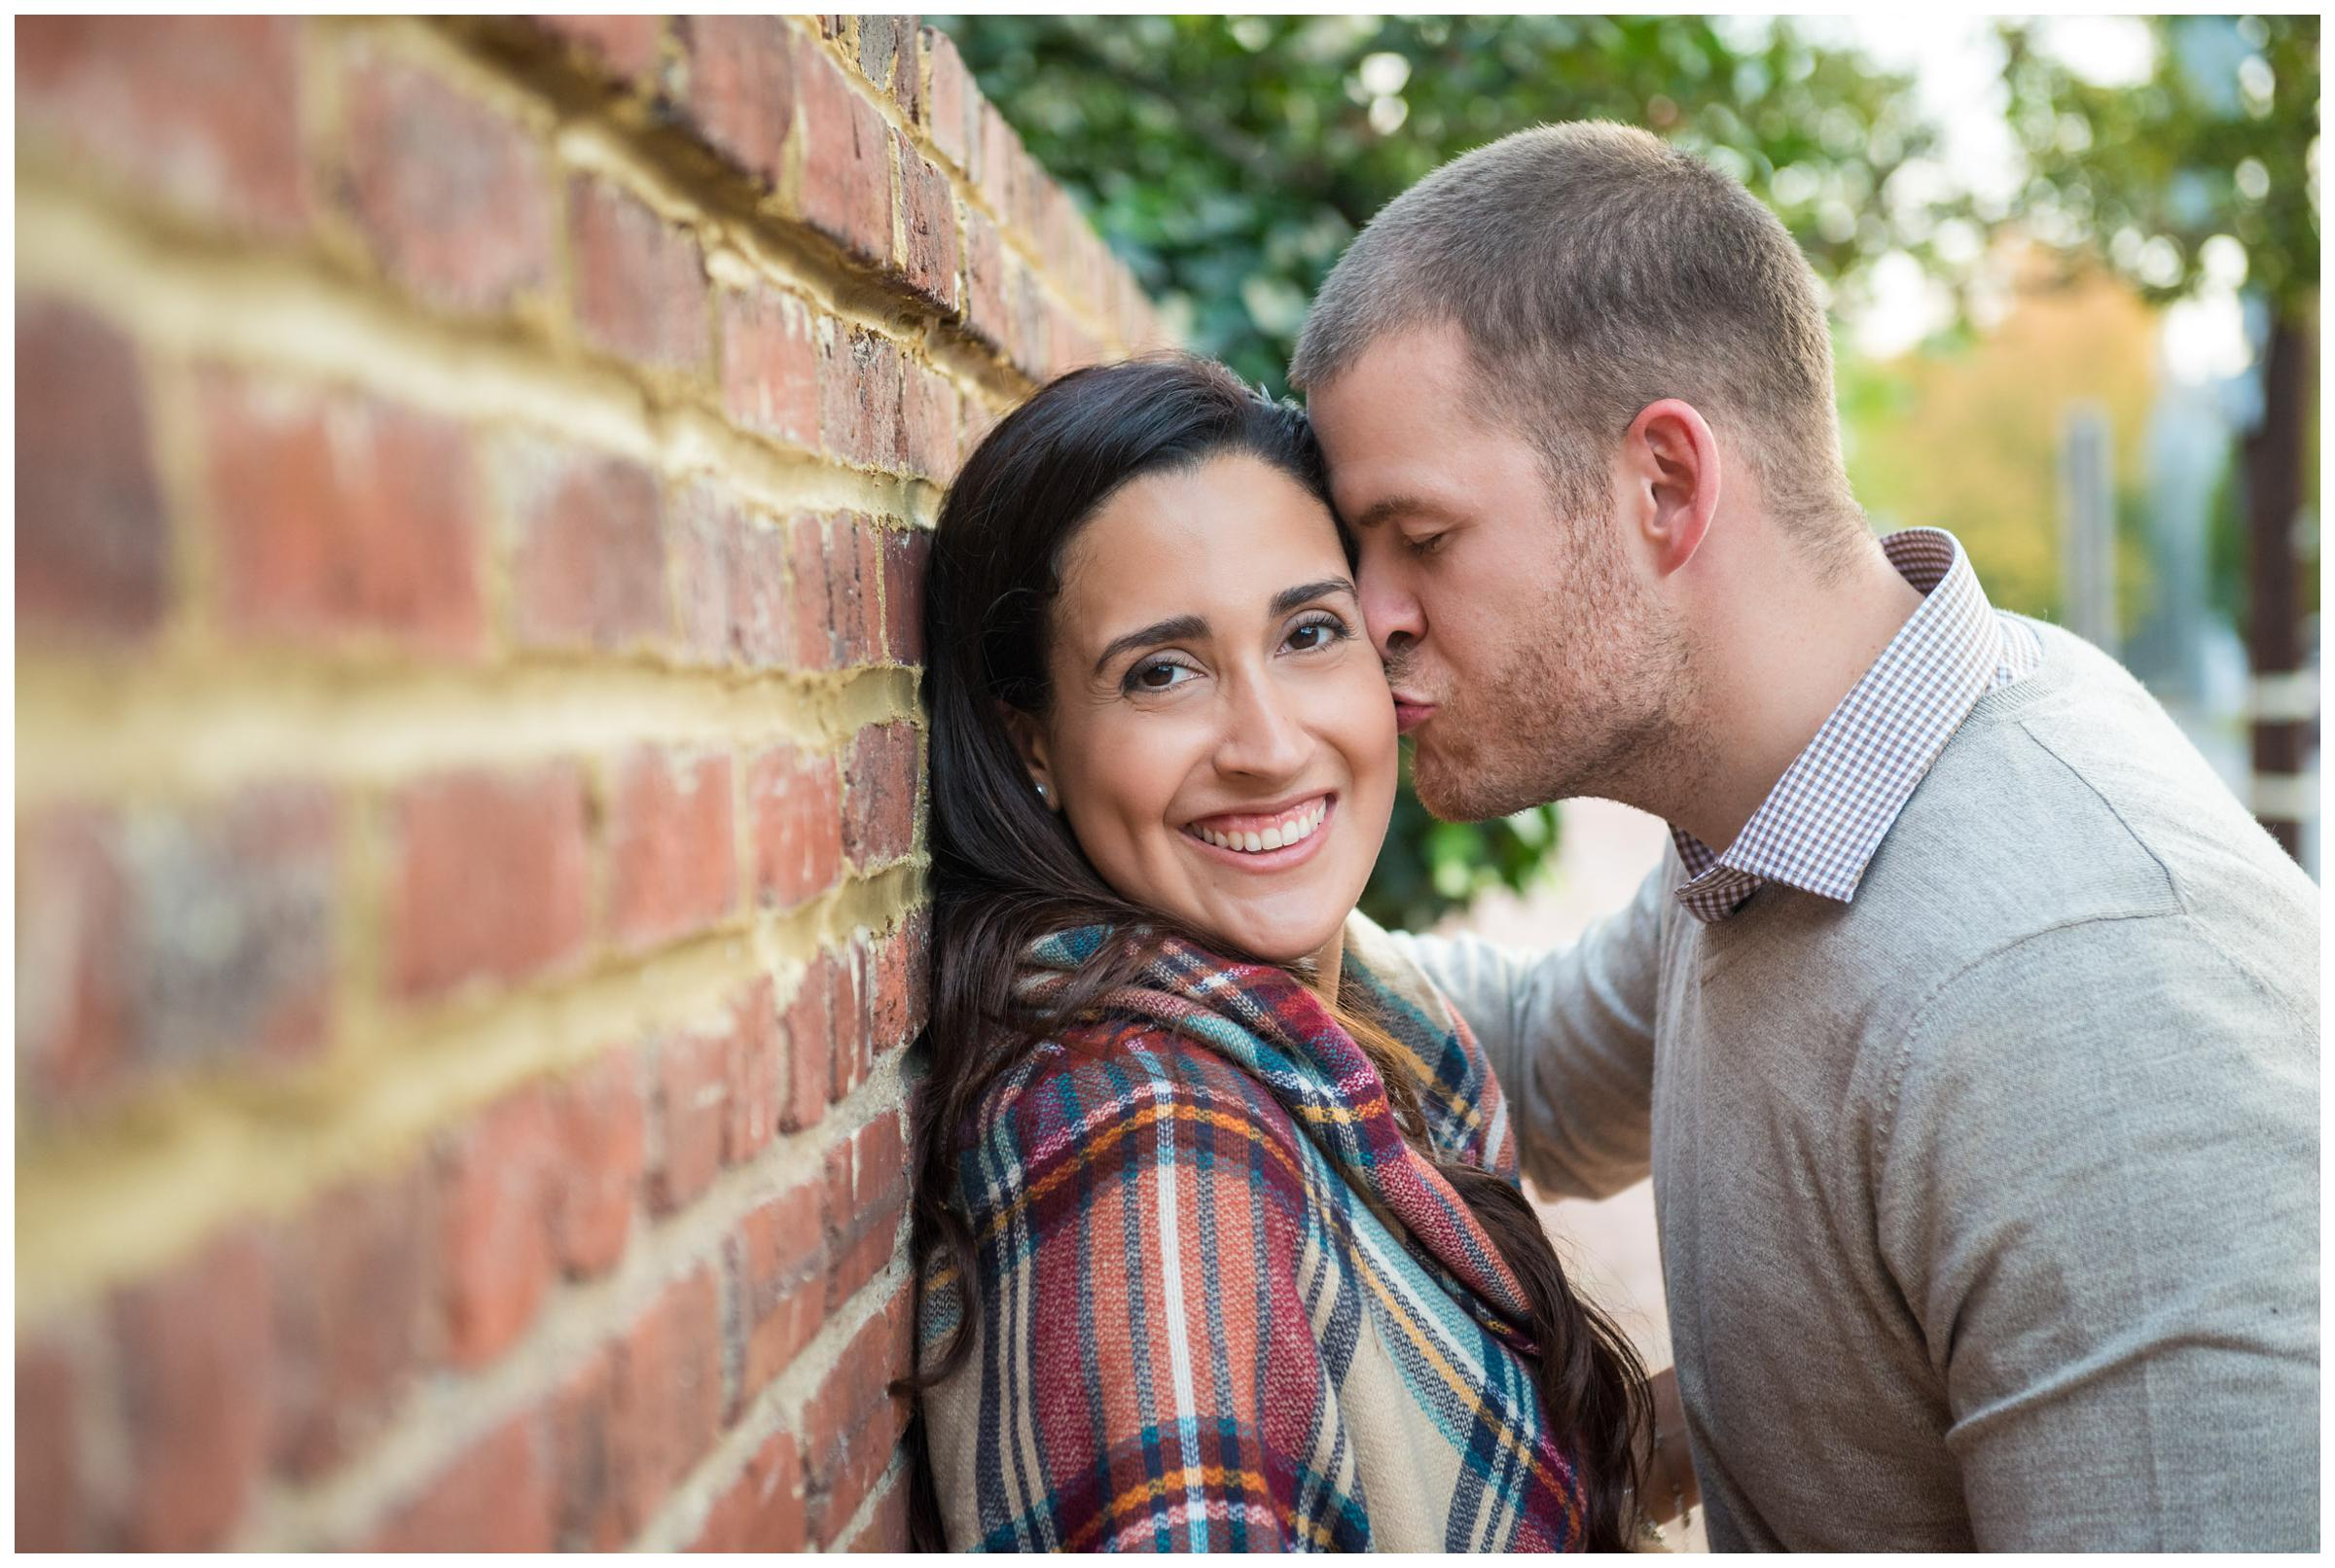 Old Town Alexandria engagement session along brick wall